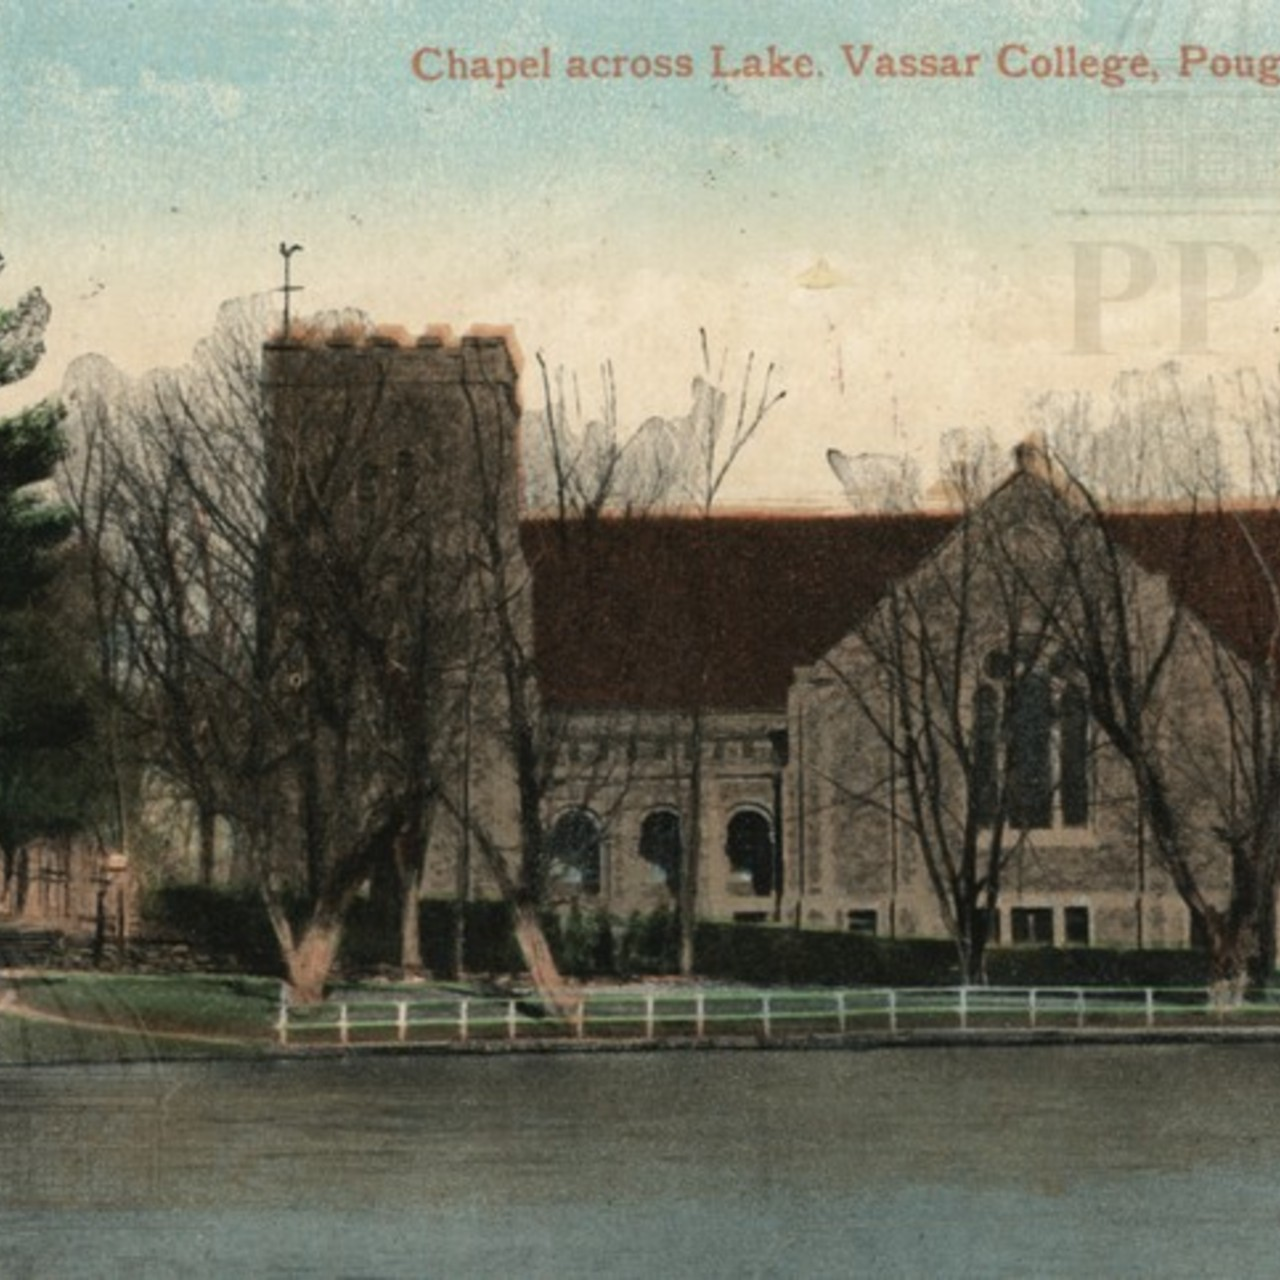 Chapel Across Lake, Vassar College